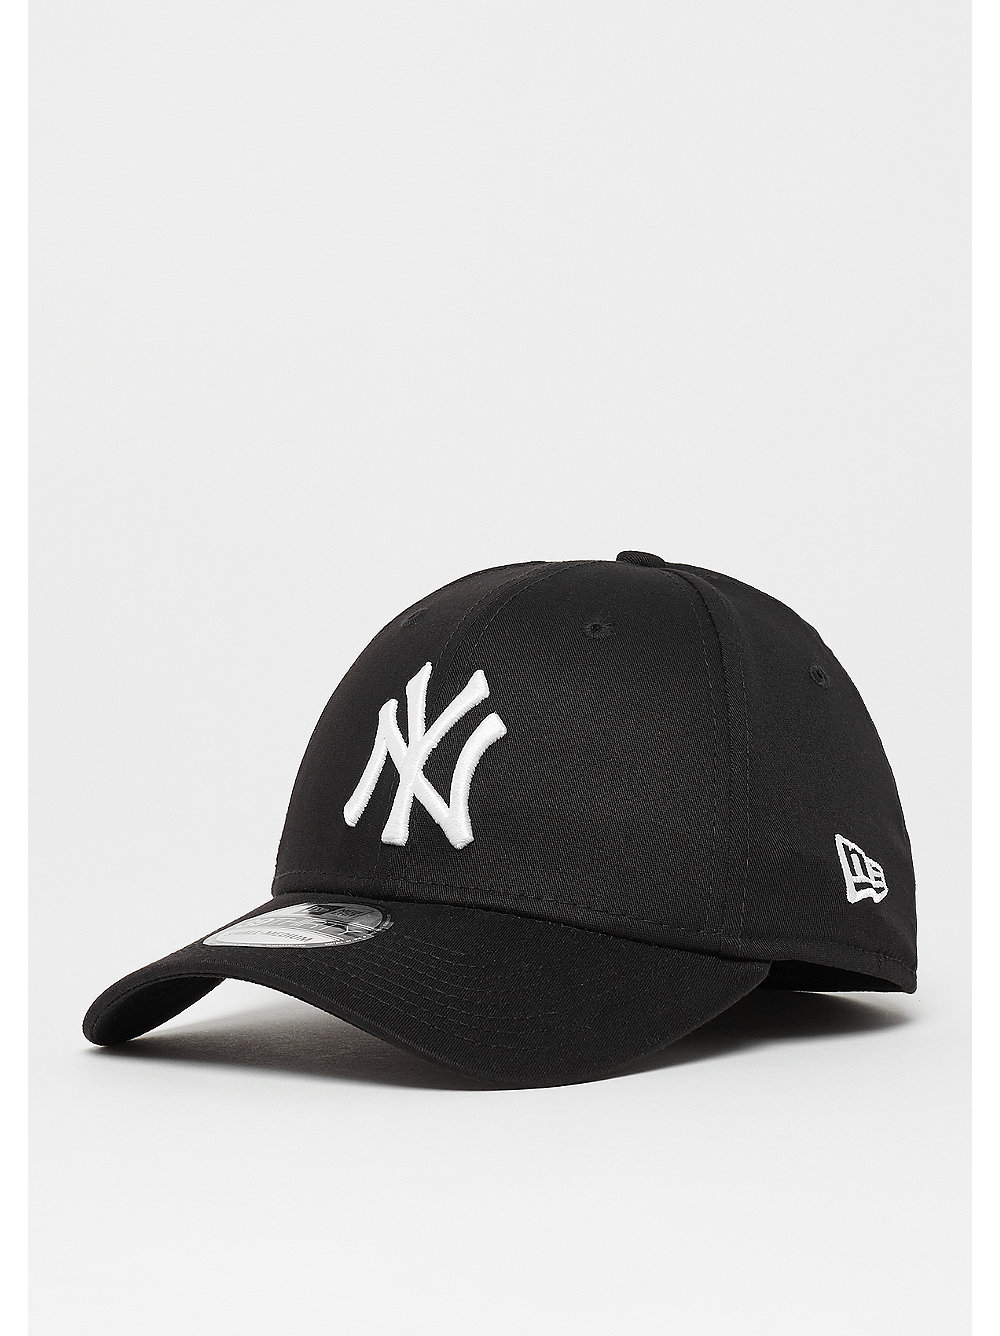 Compra New Era 39Thirty MLB New York Yankees blk wht en SNIPES 0cd56bce331